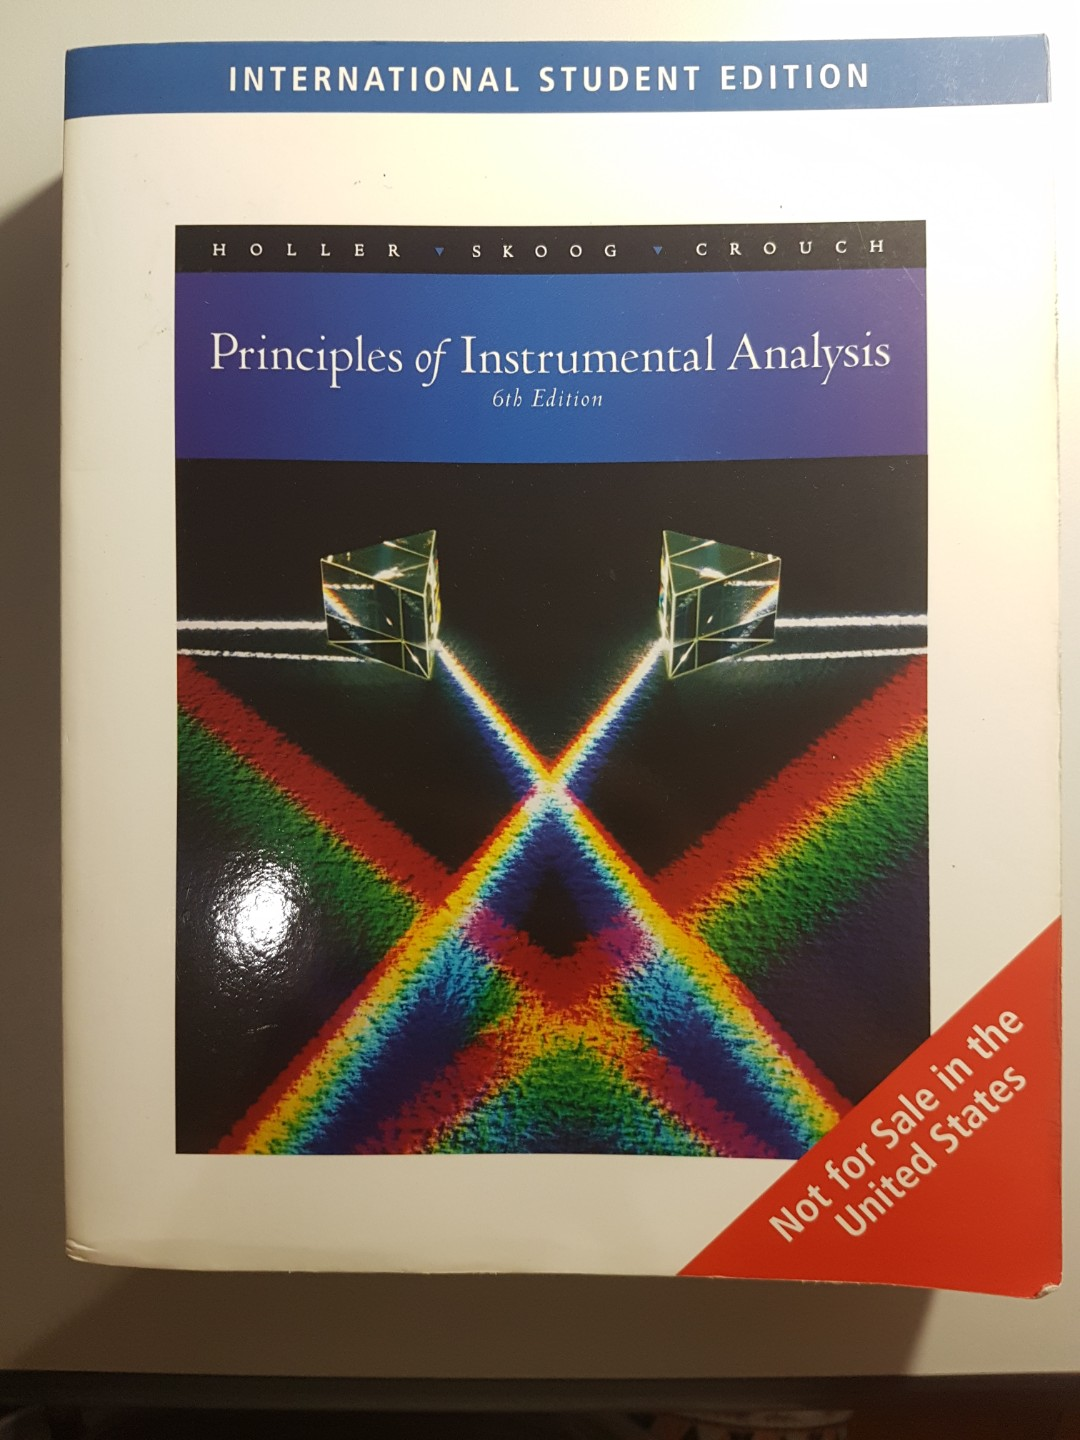 Principles of Instrumental Analysis 6th Edition, Books & Stationery,  Textbooks, Tertiary on Carousell